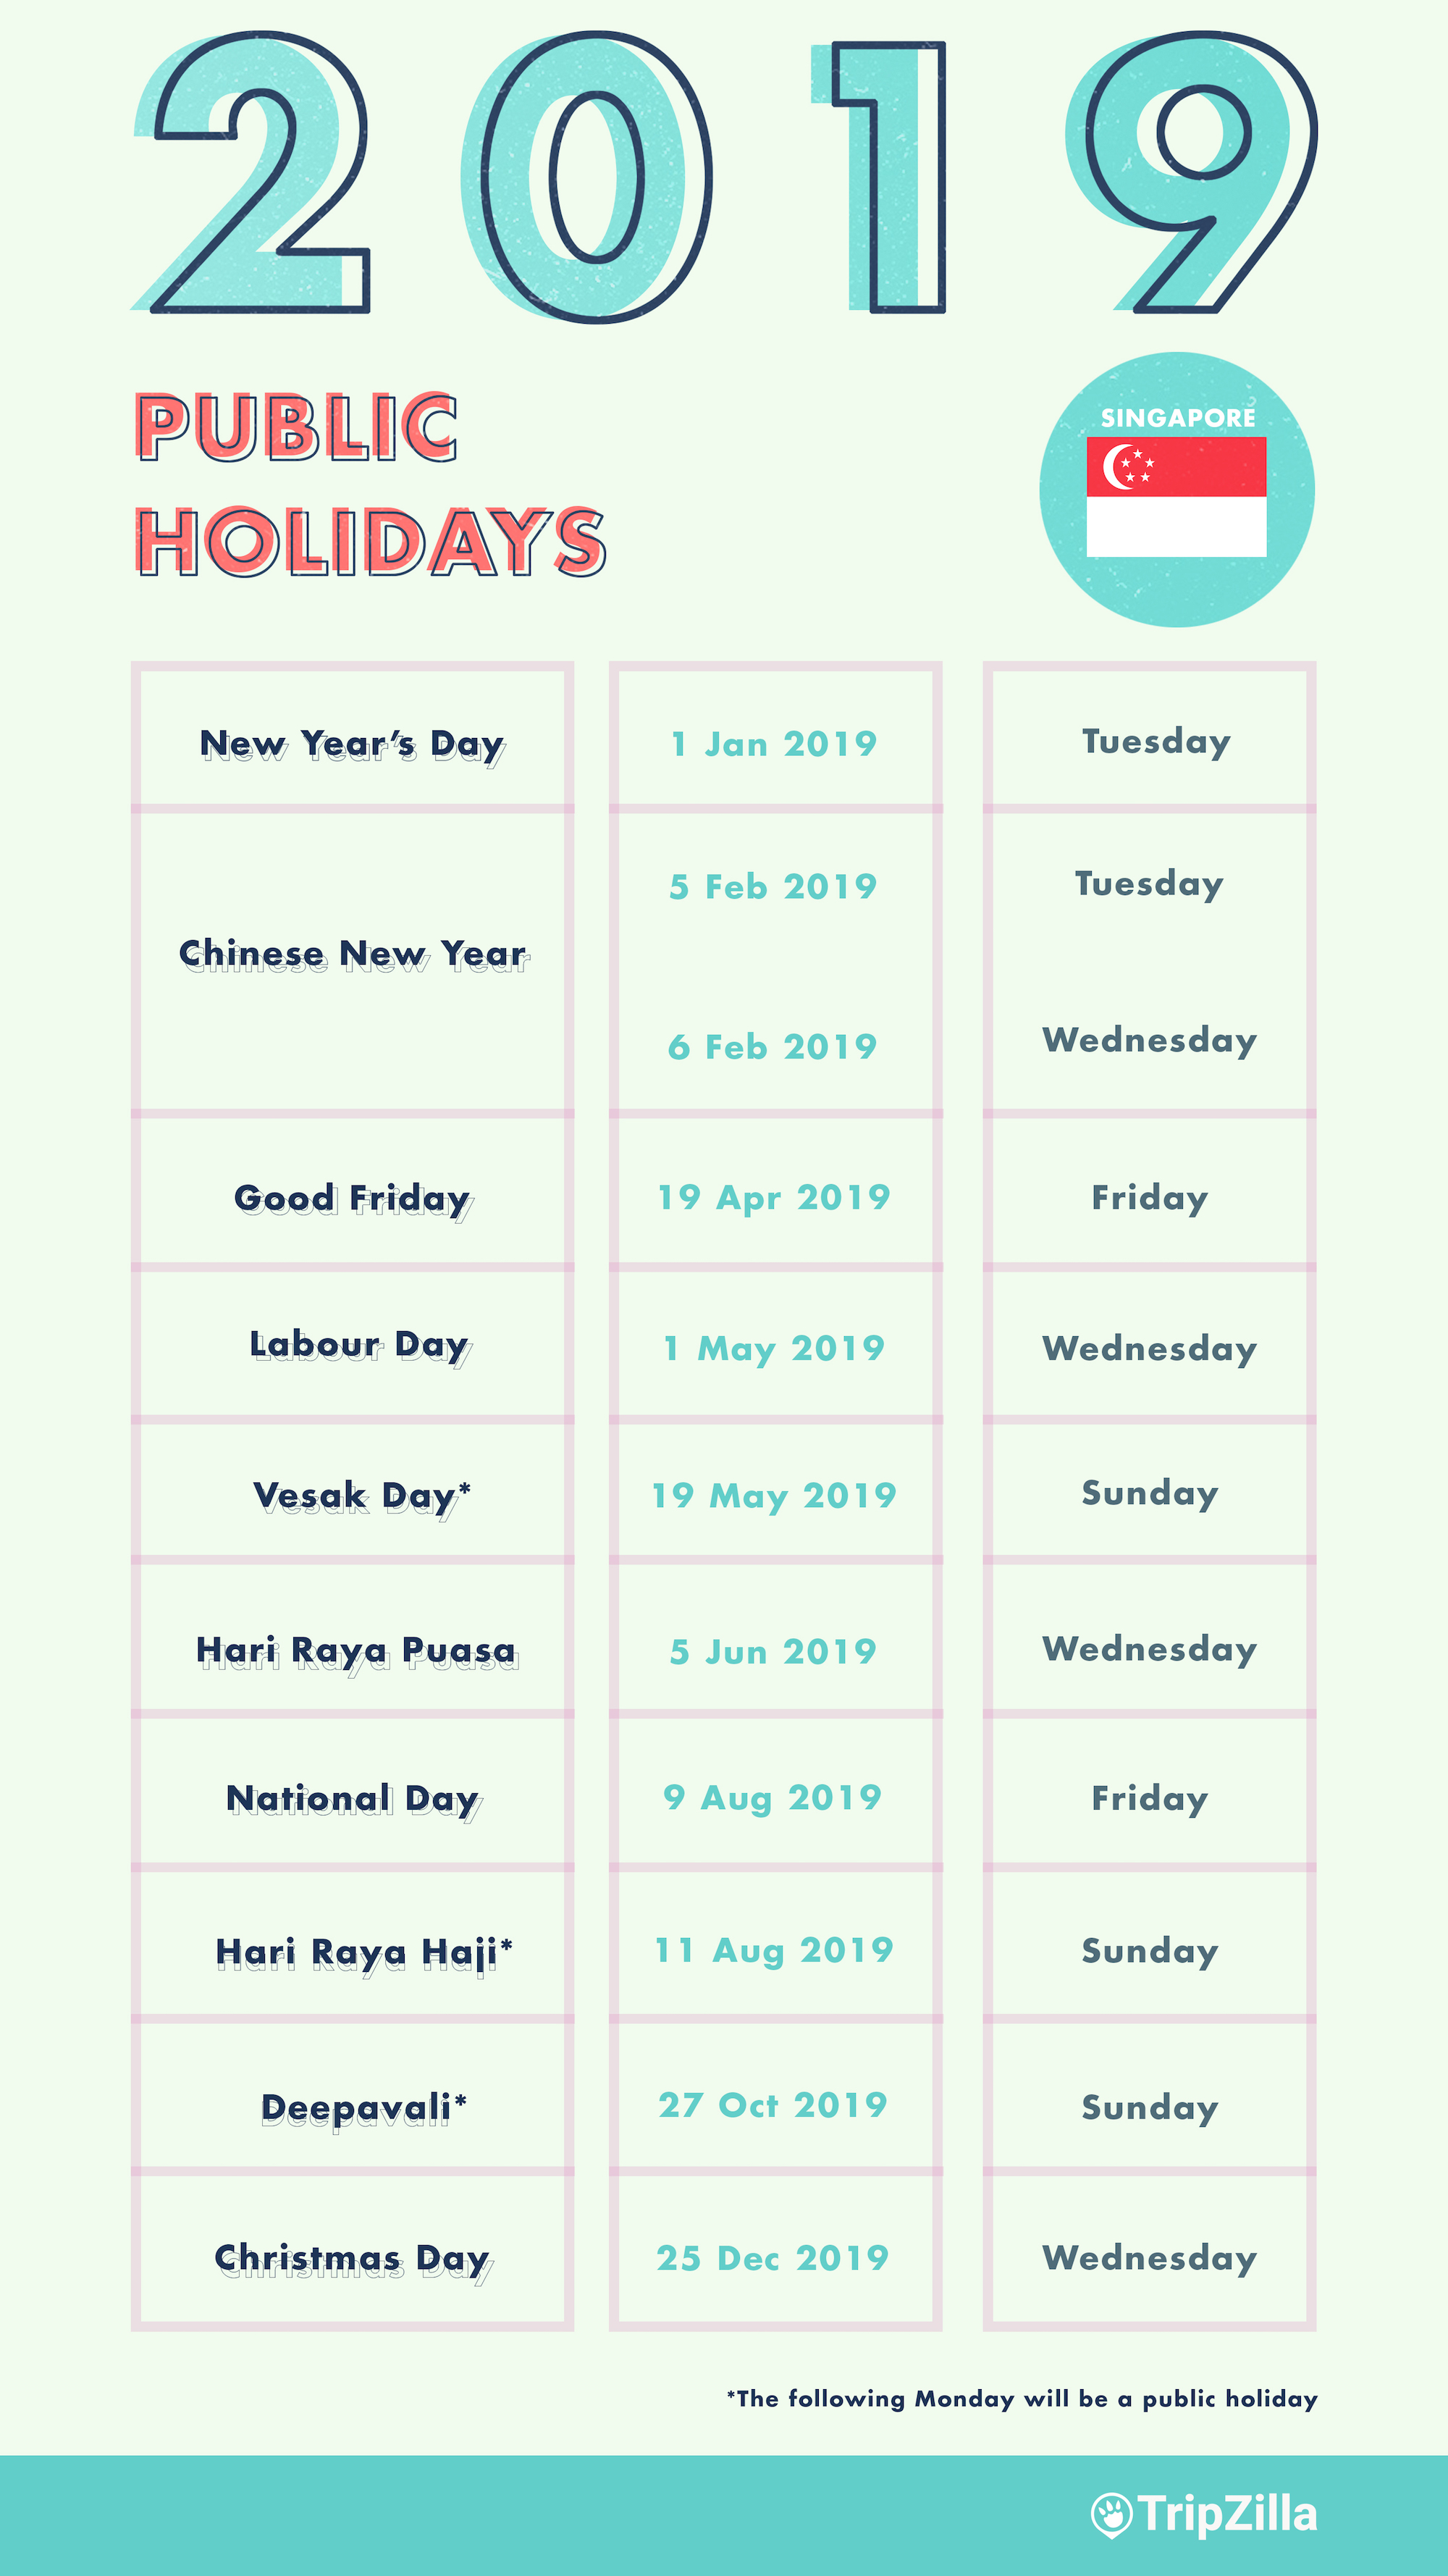 Calendar Year Same As 2019 With 6 Long Weekends In Singapore Bonus Cheatsheet